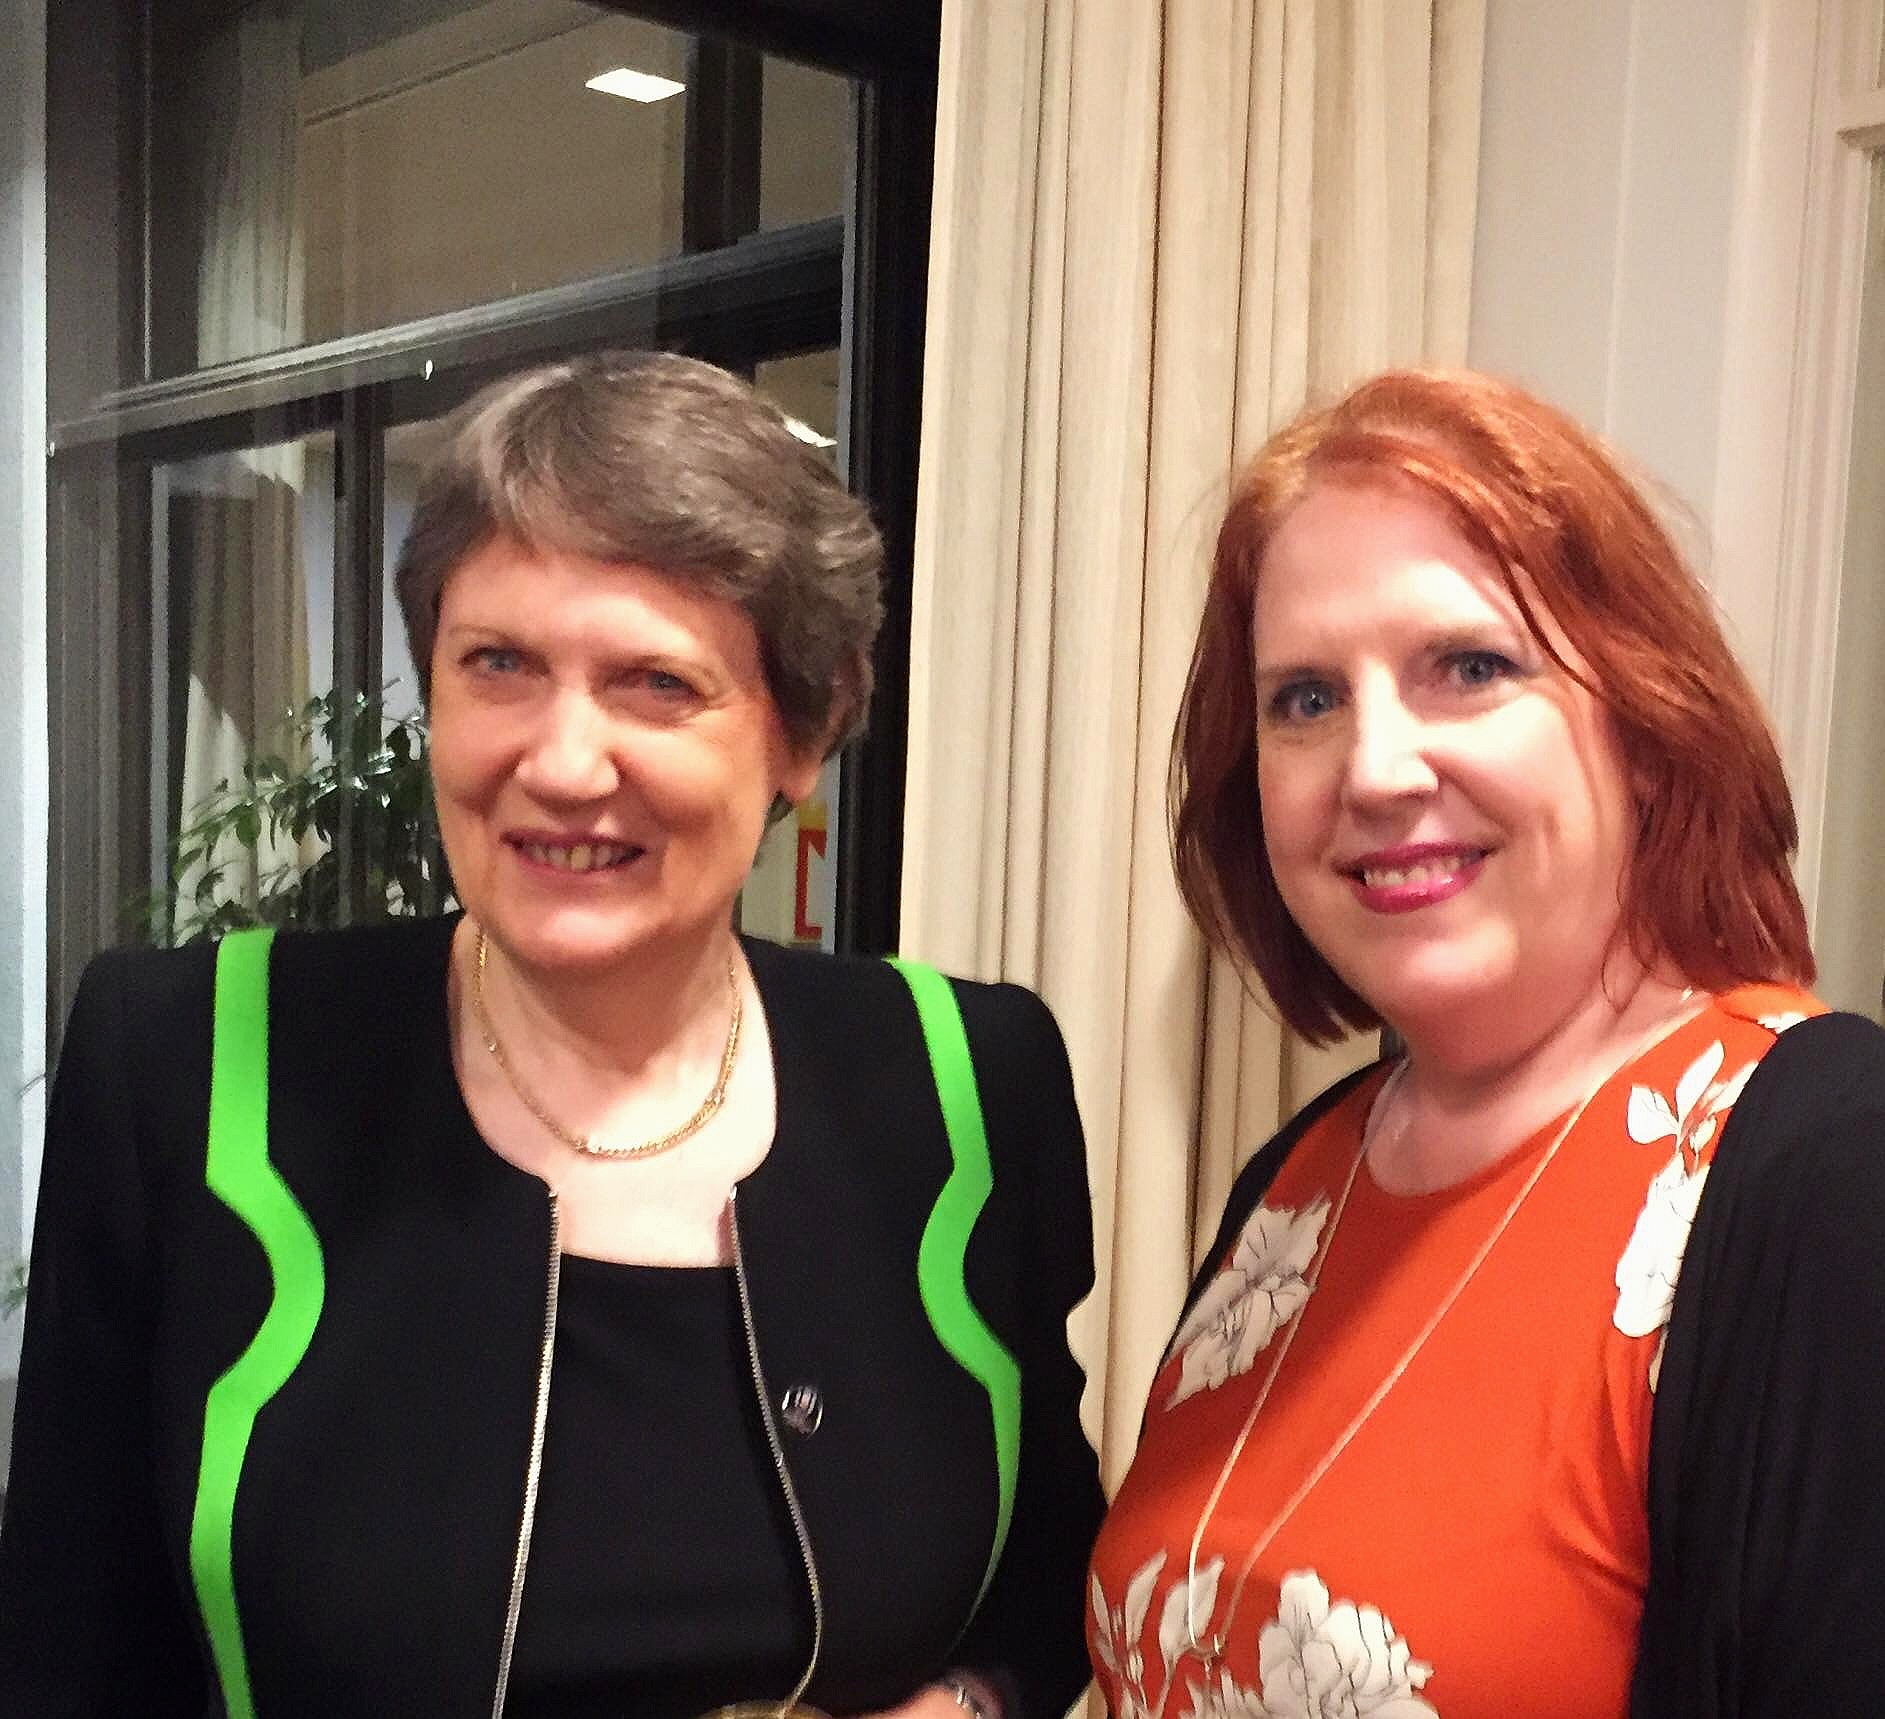 Catherine O'Connell with former NZ prime minister the Rt Honourable Helen Clark at the NZ Embassy in 2018